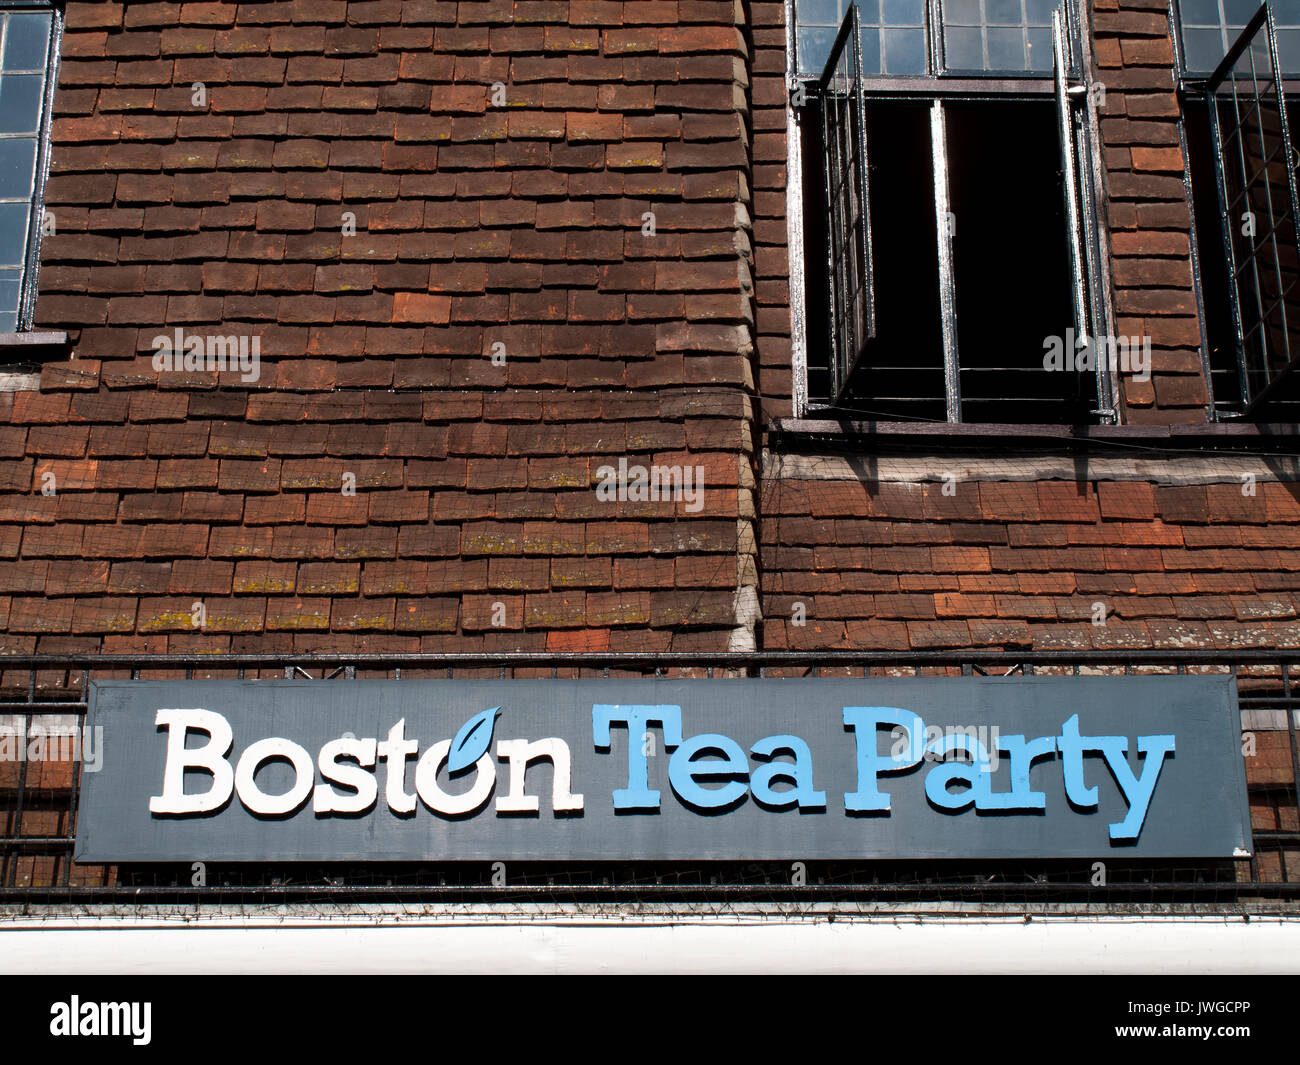 Boston Tea Party sign over premises, British family owned cafe group, first establishment opened in 1995 - Stock Image